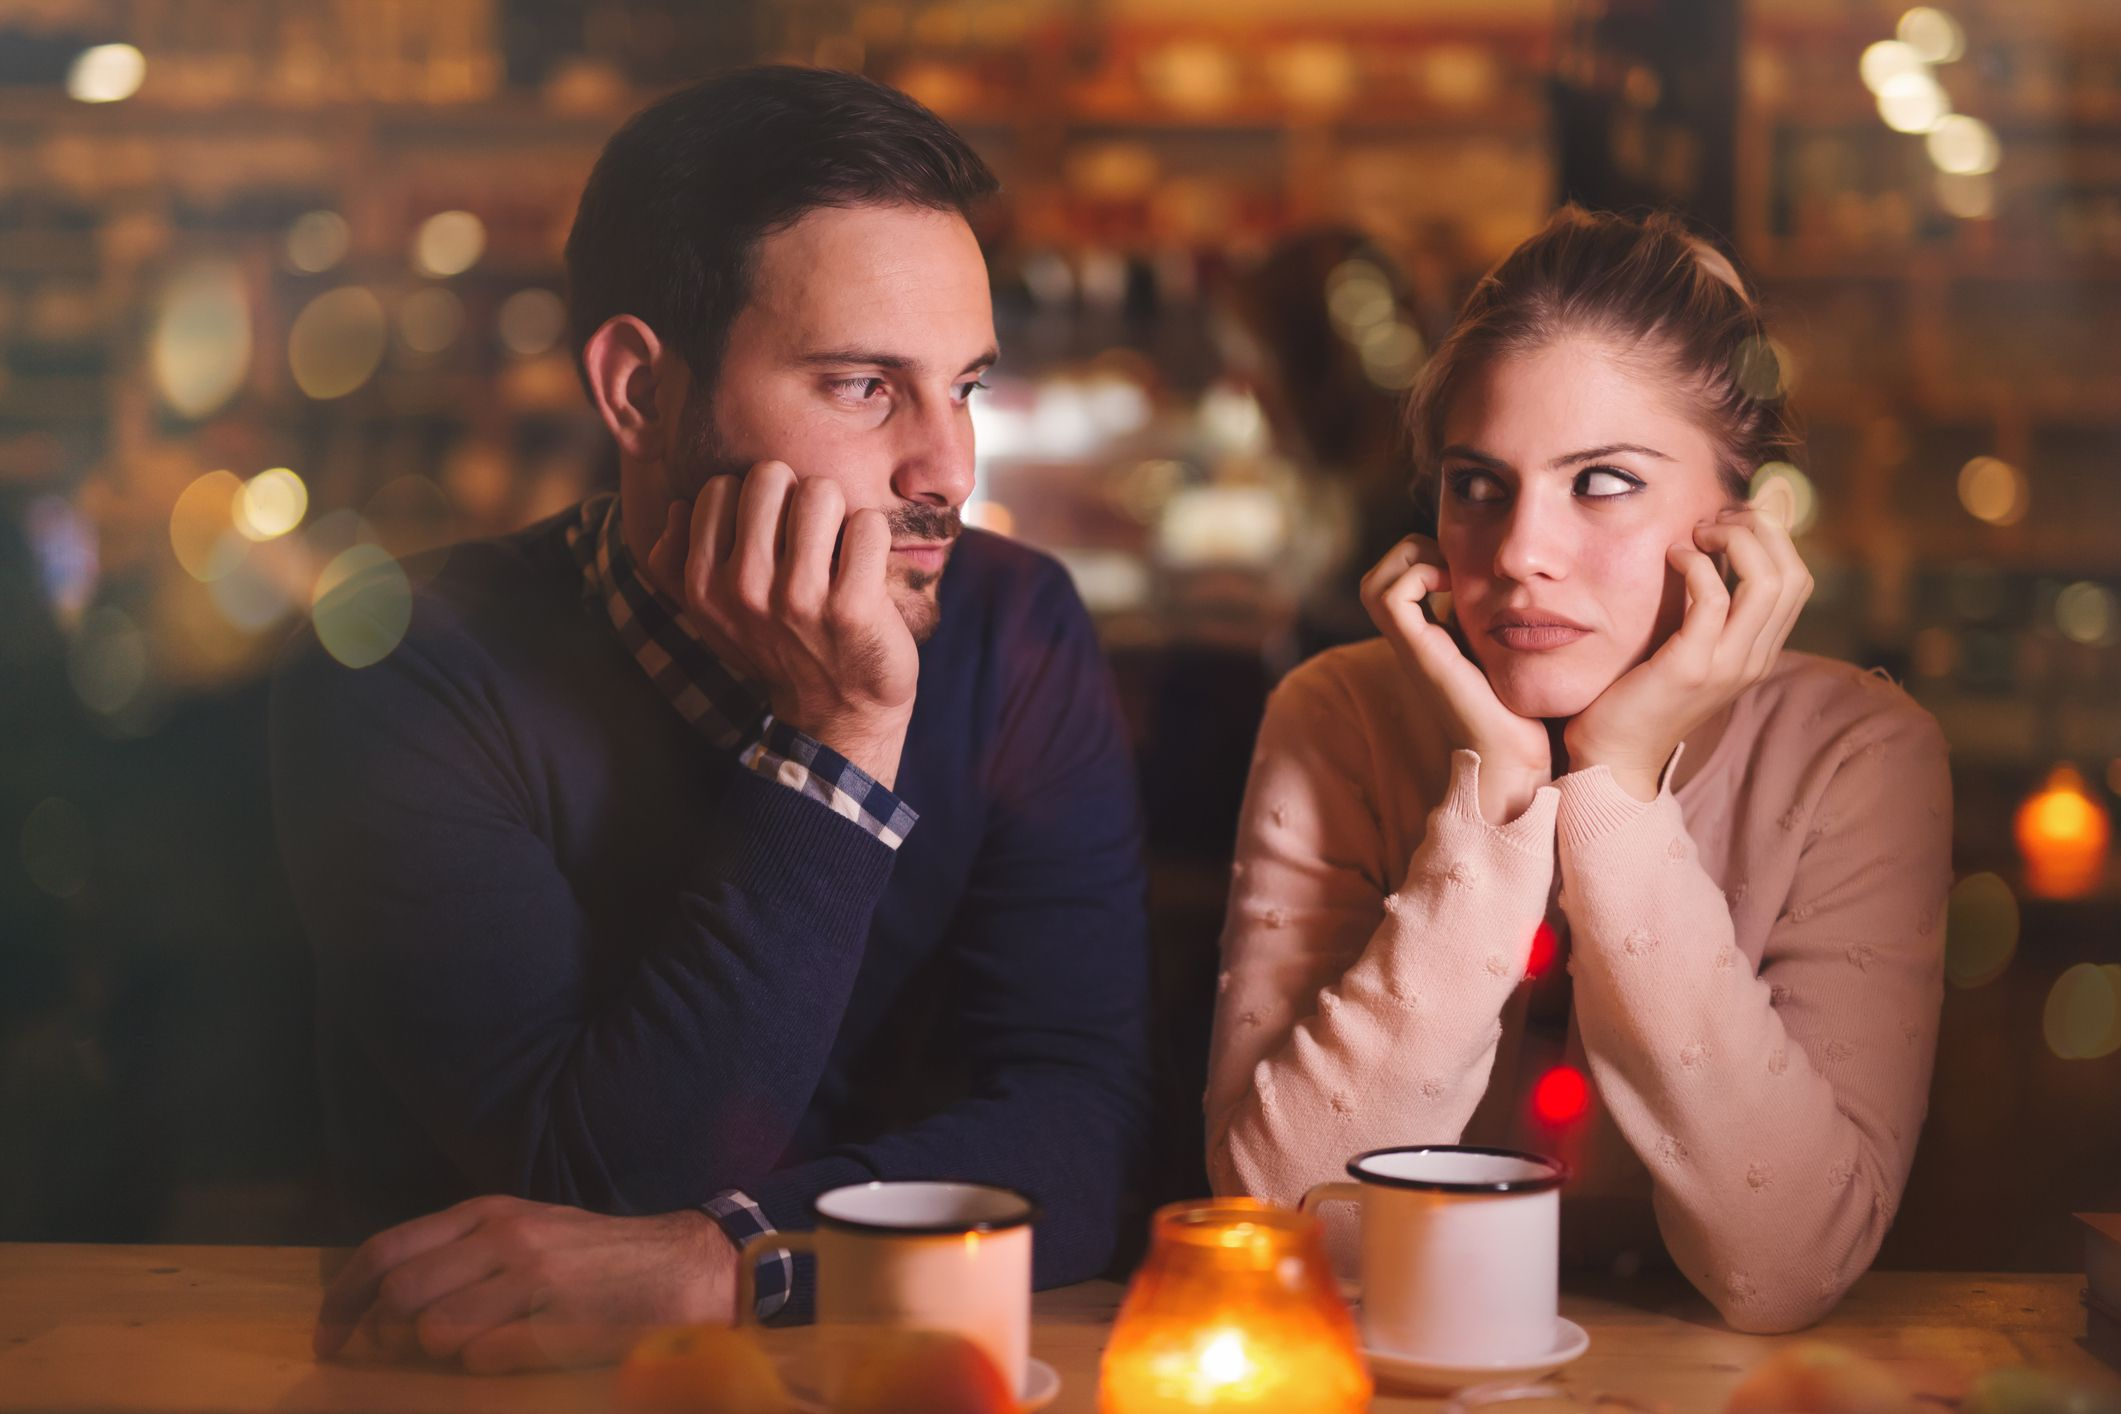 How often should you see someone when first dating